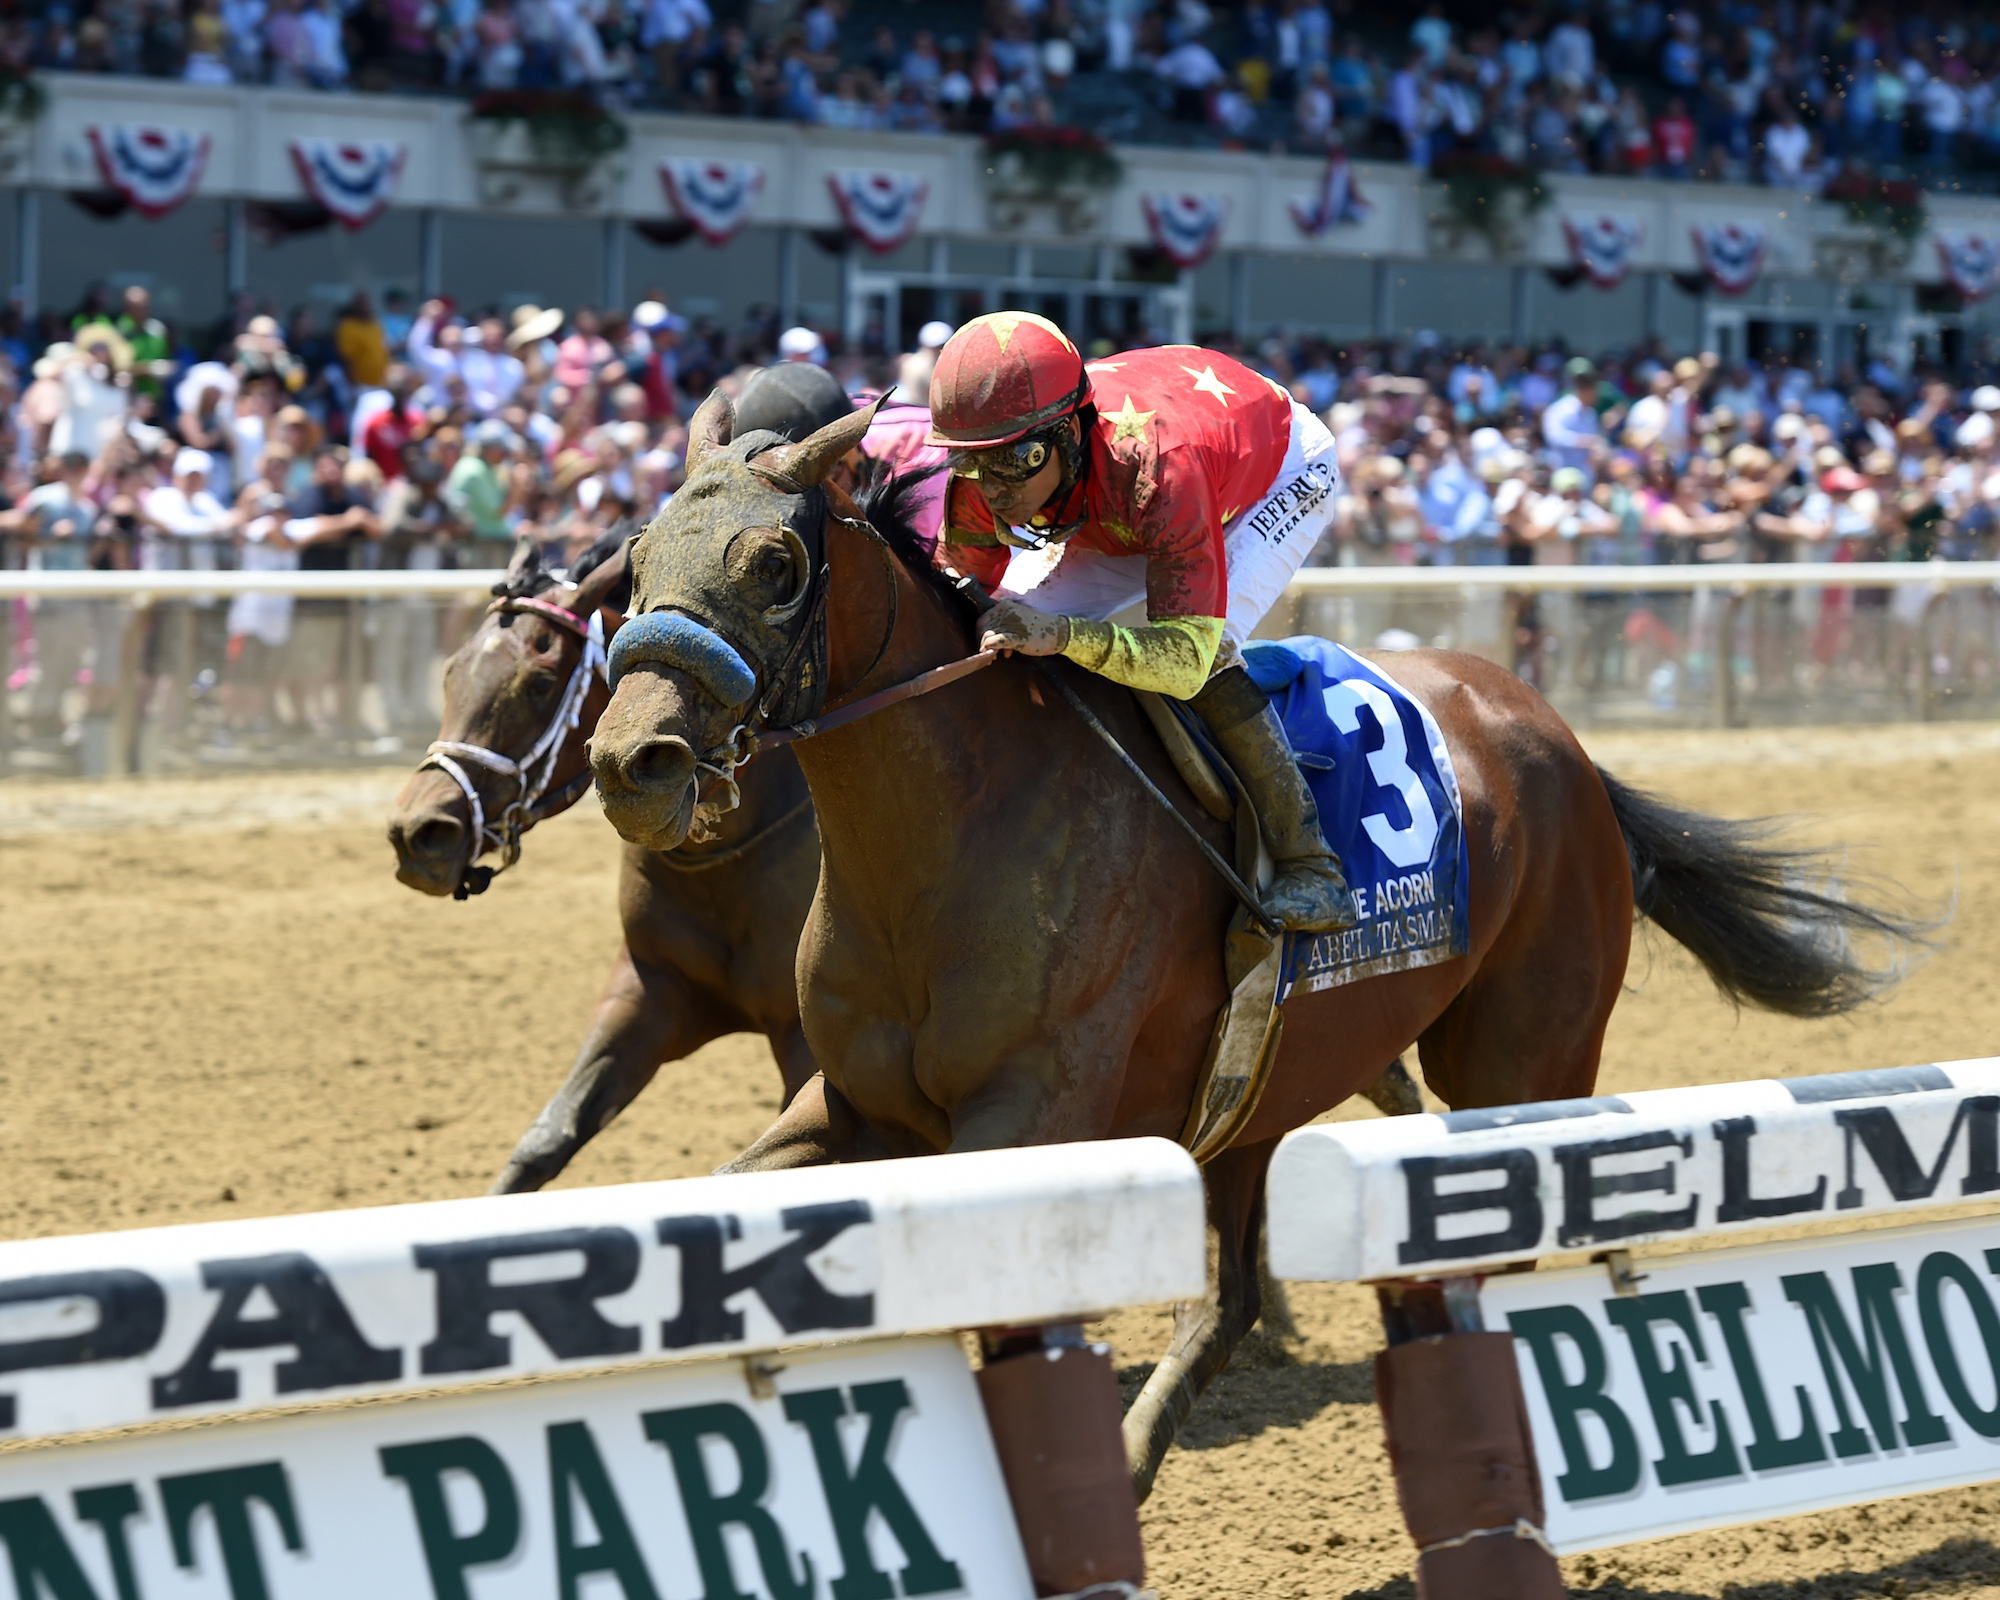 Abel Tasman winning the Acorn Stakes at Belmont Park in June. The filly failed to reach her reserve when Clearsky sent her to the sales, so it was stroke of luck that they kept her. Photo: Joe Labozzetta/NYRA.com